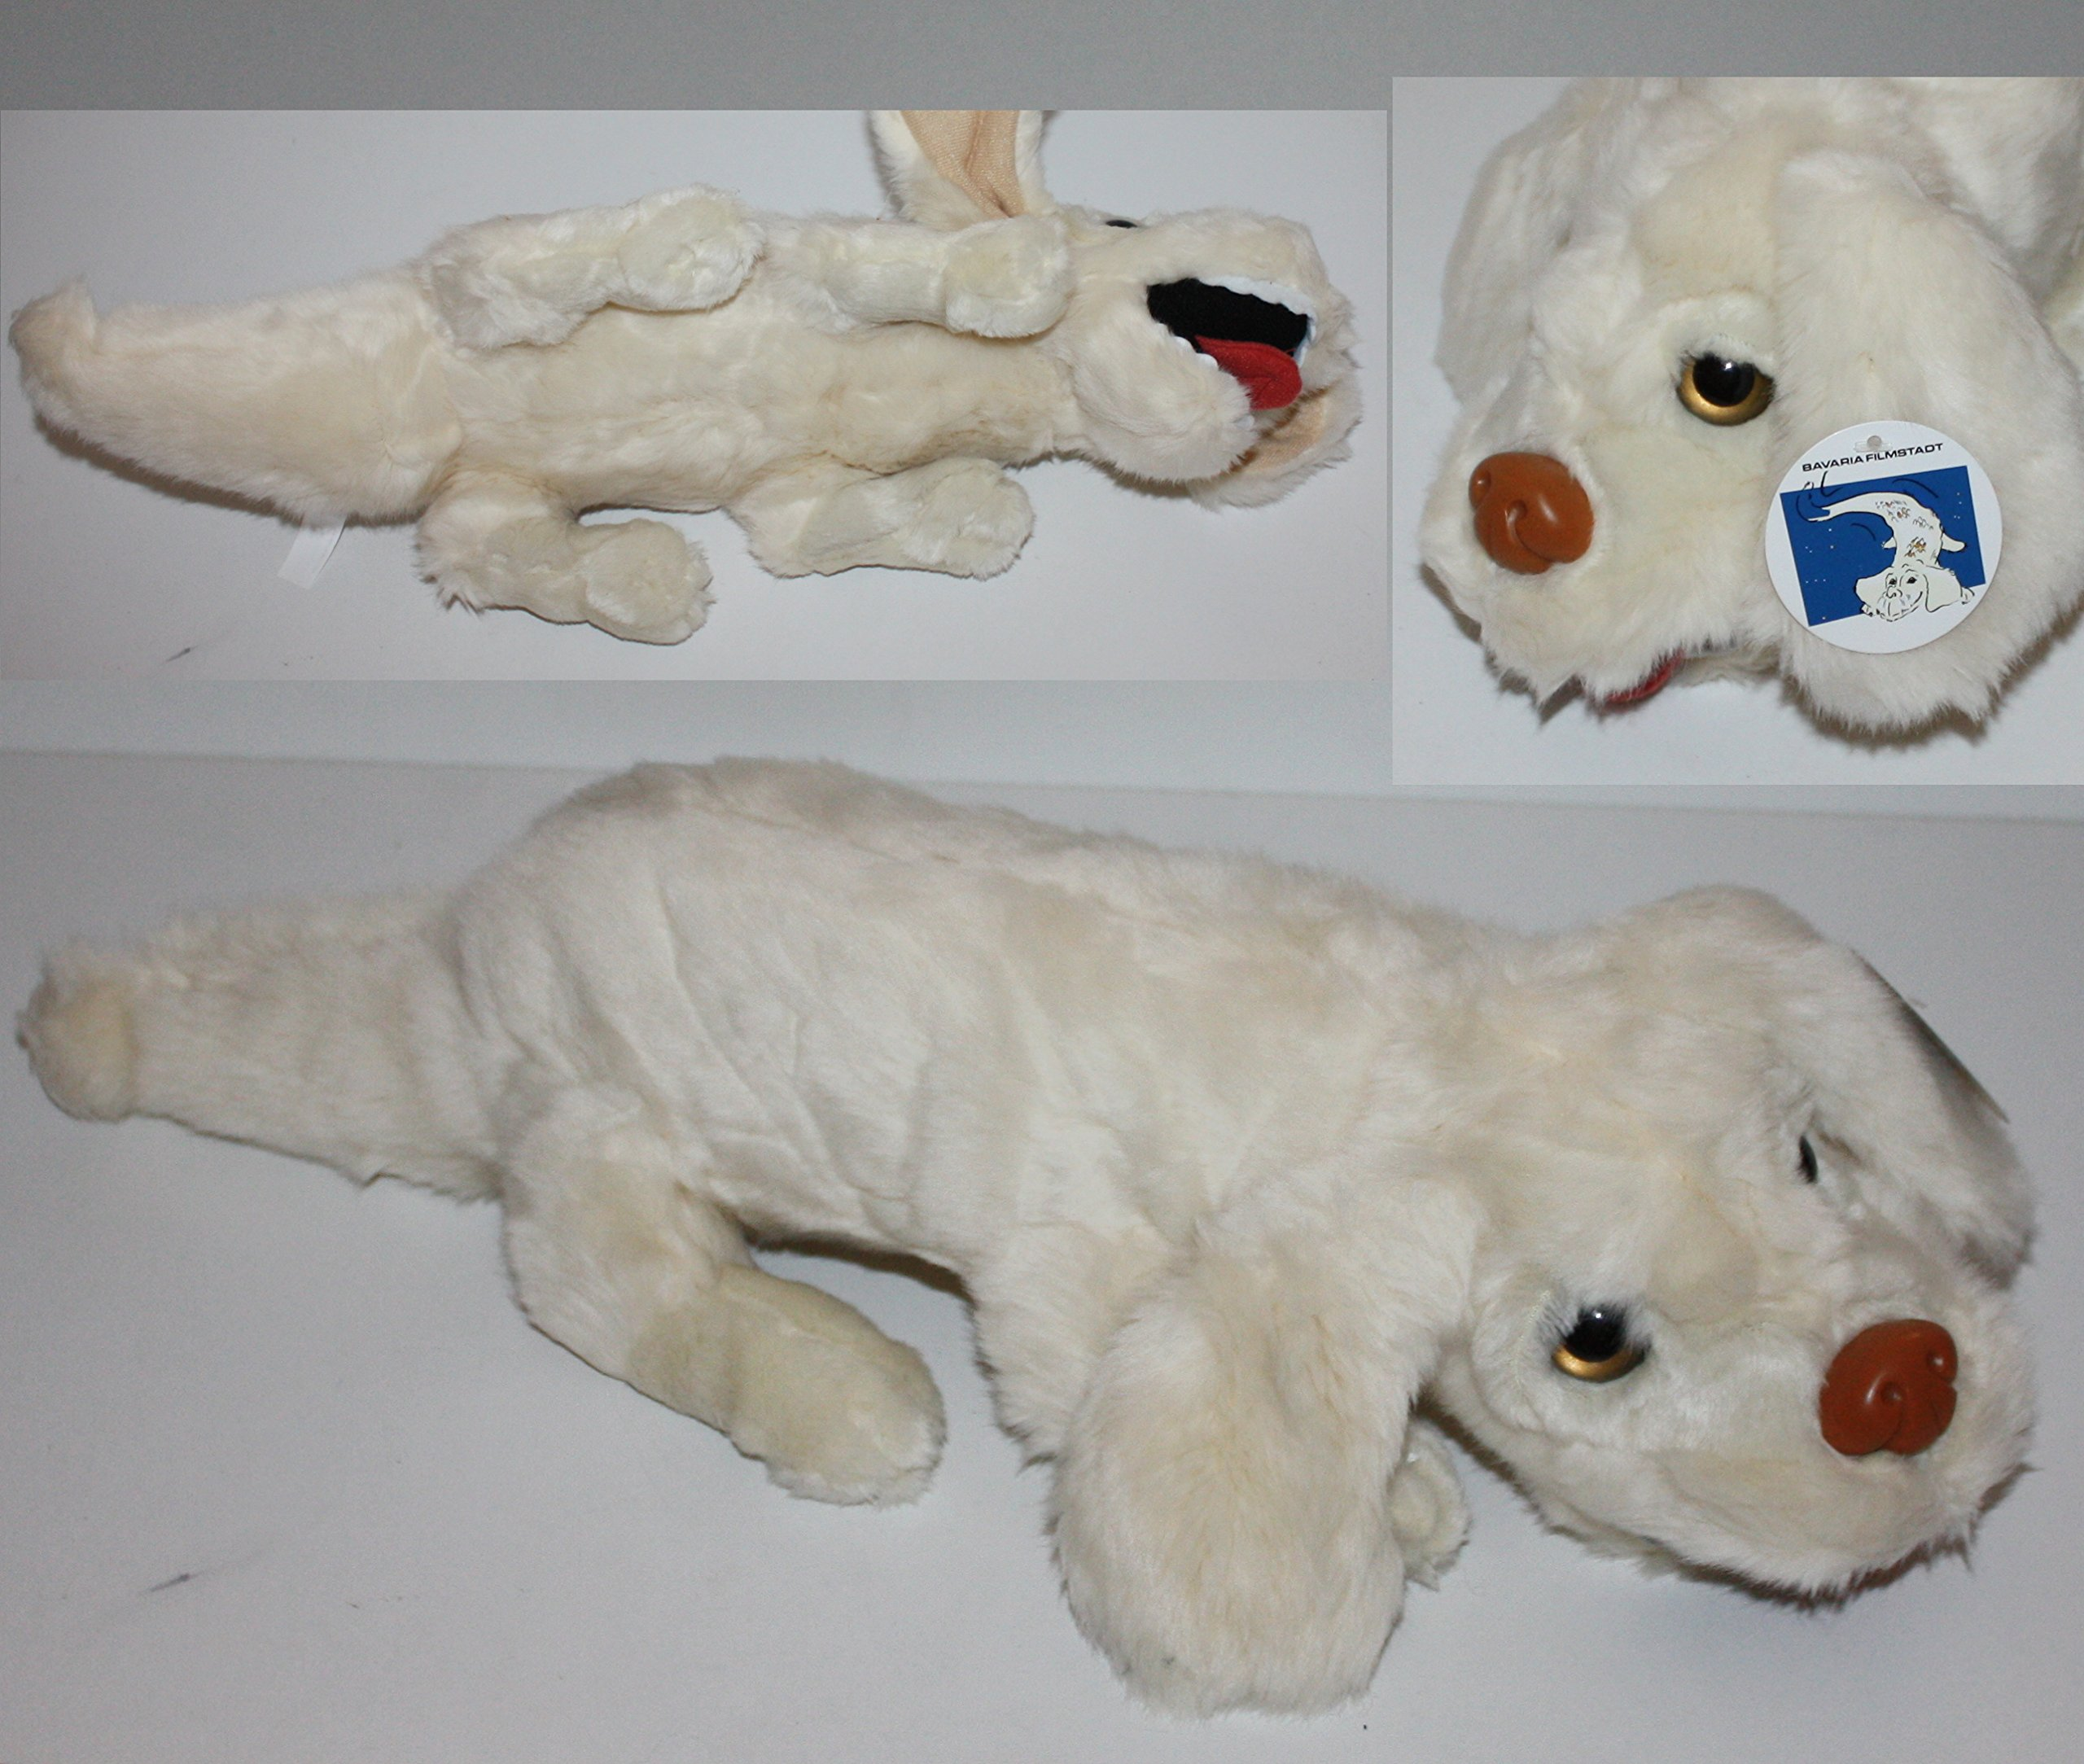 Official The Neverending Story Falkor / Falcor Luck Dragon Plush Toy (Imported from Germany) by Filmstadt